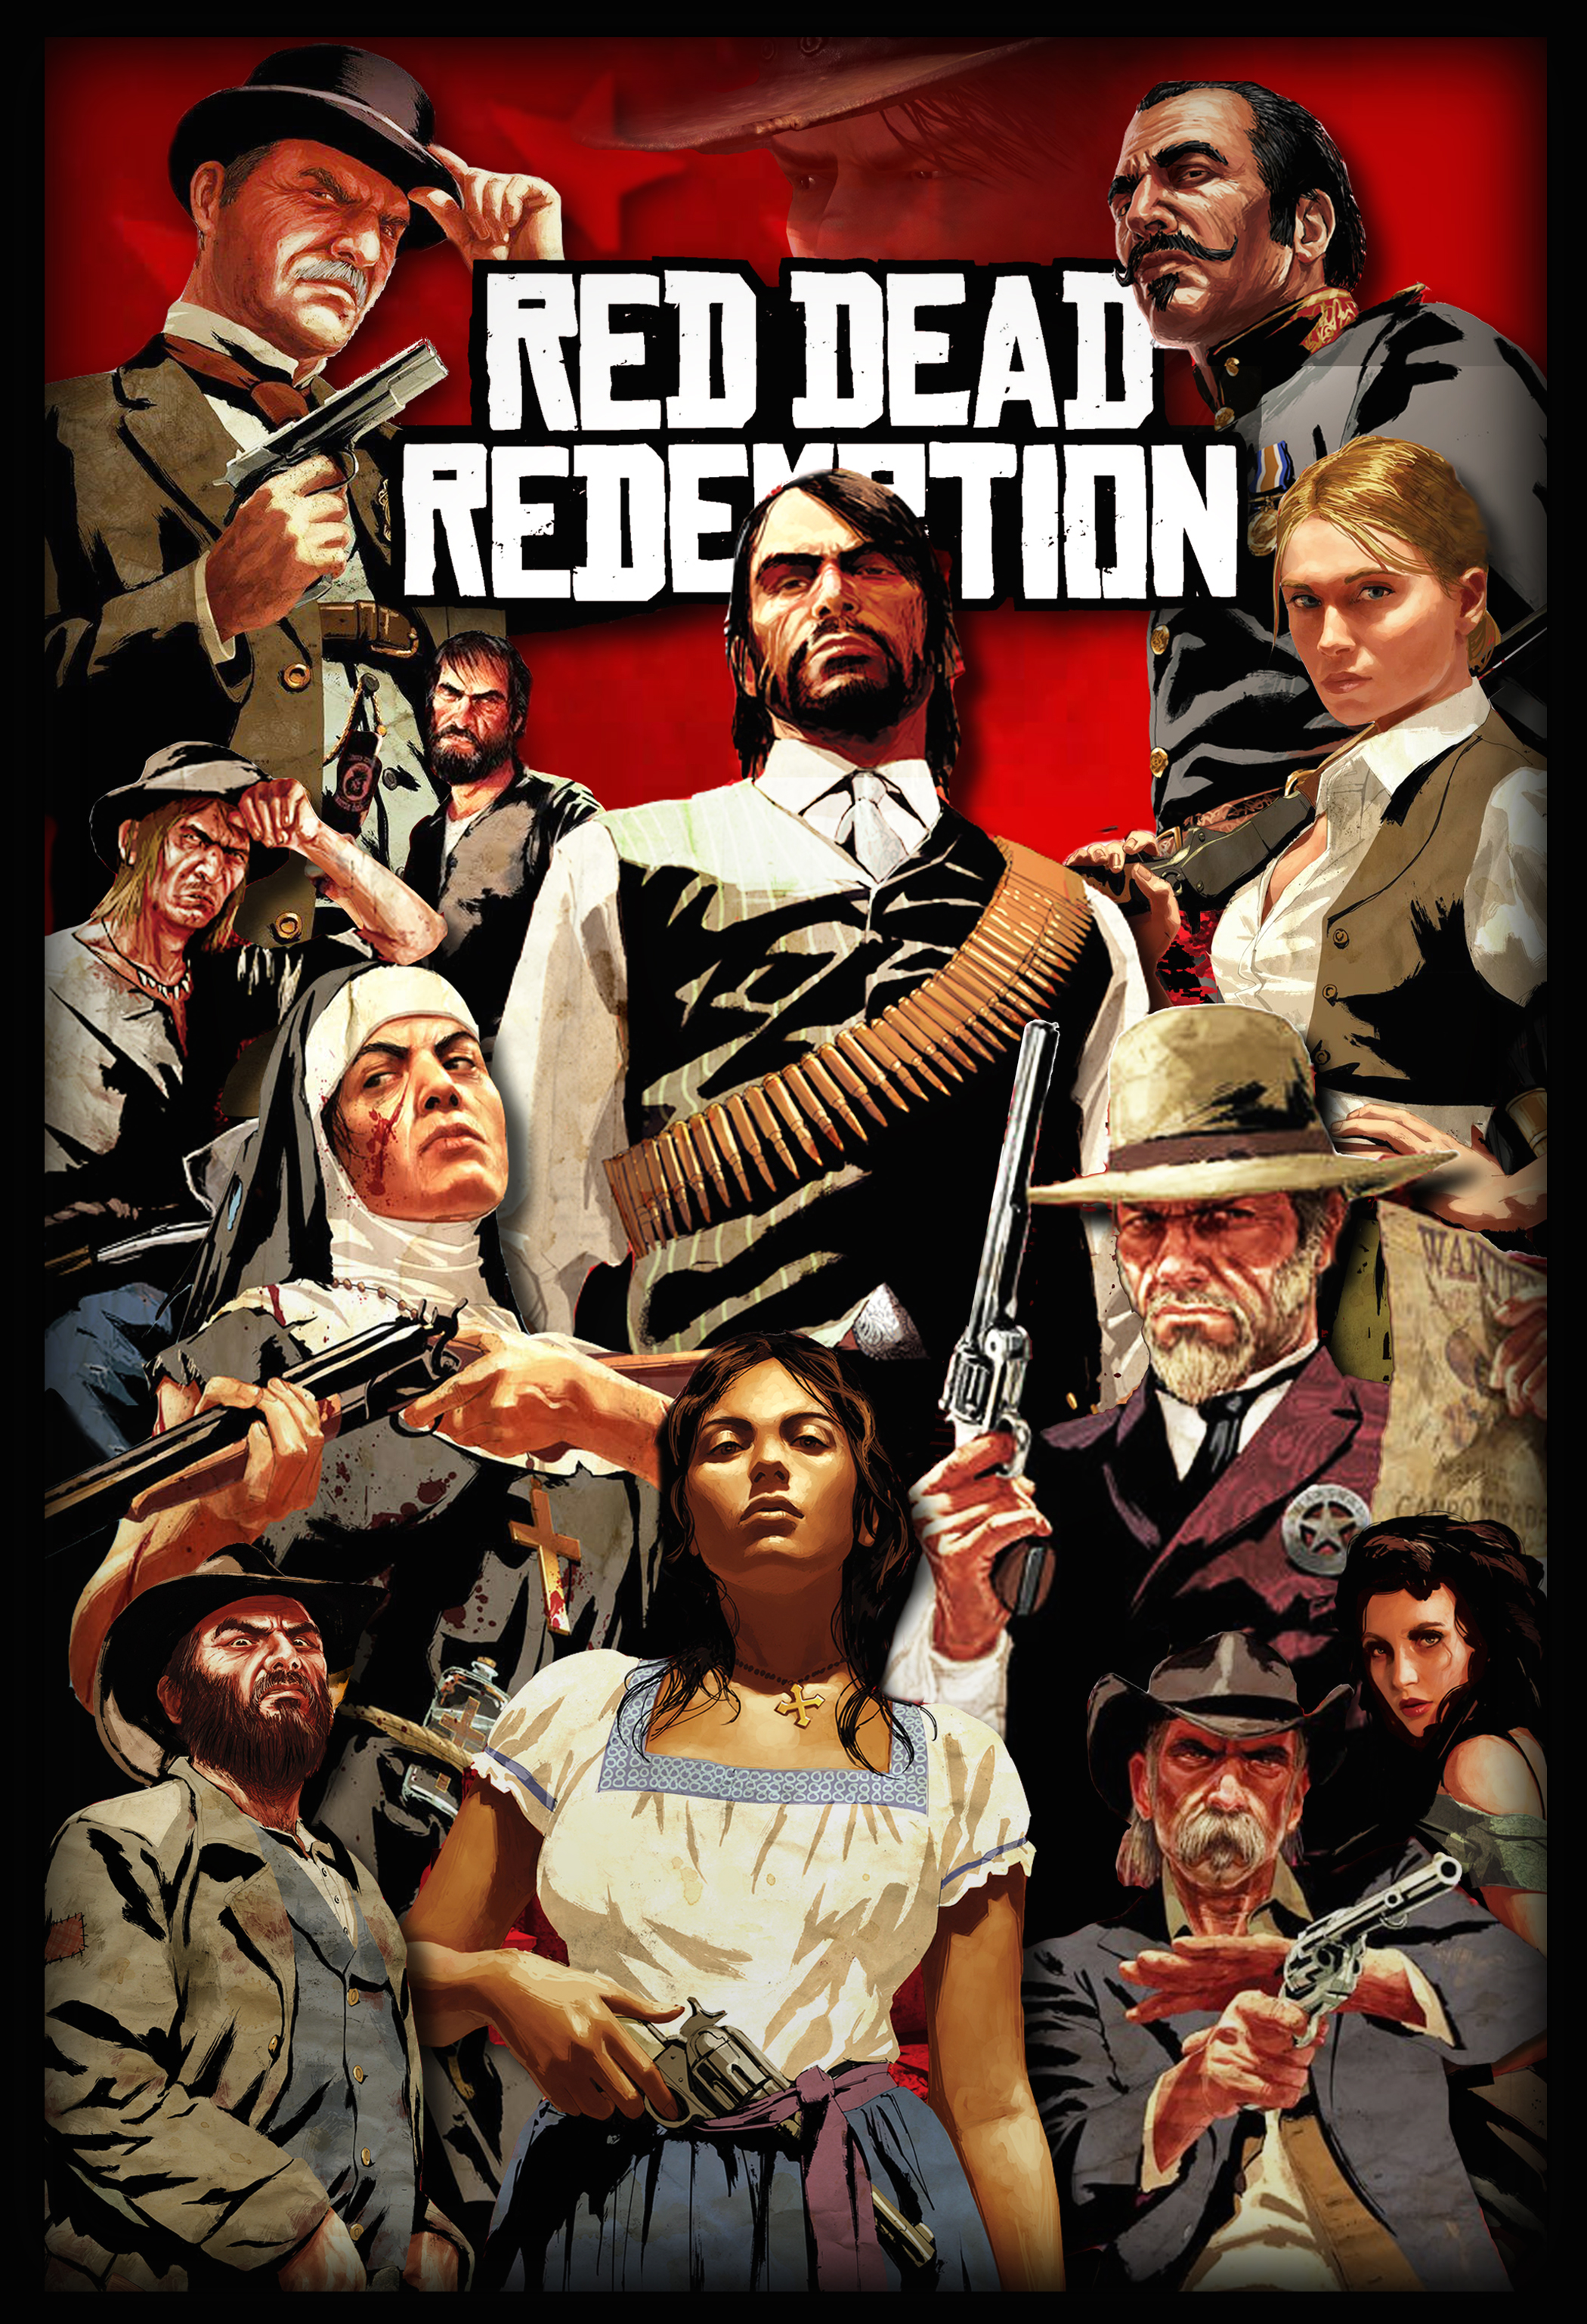 Red dead redemption hentai video cartoon movies